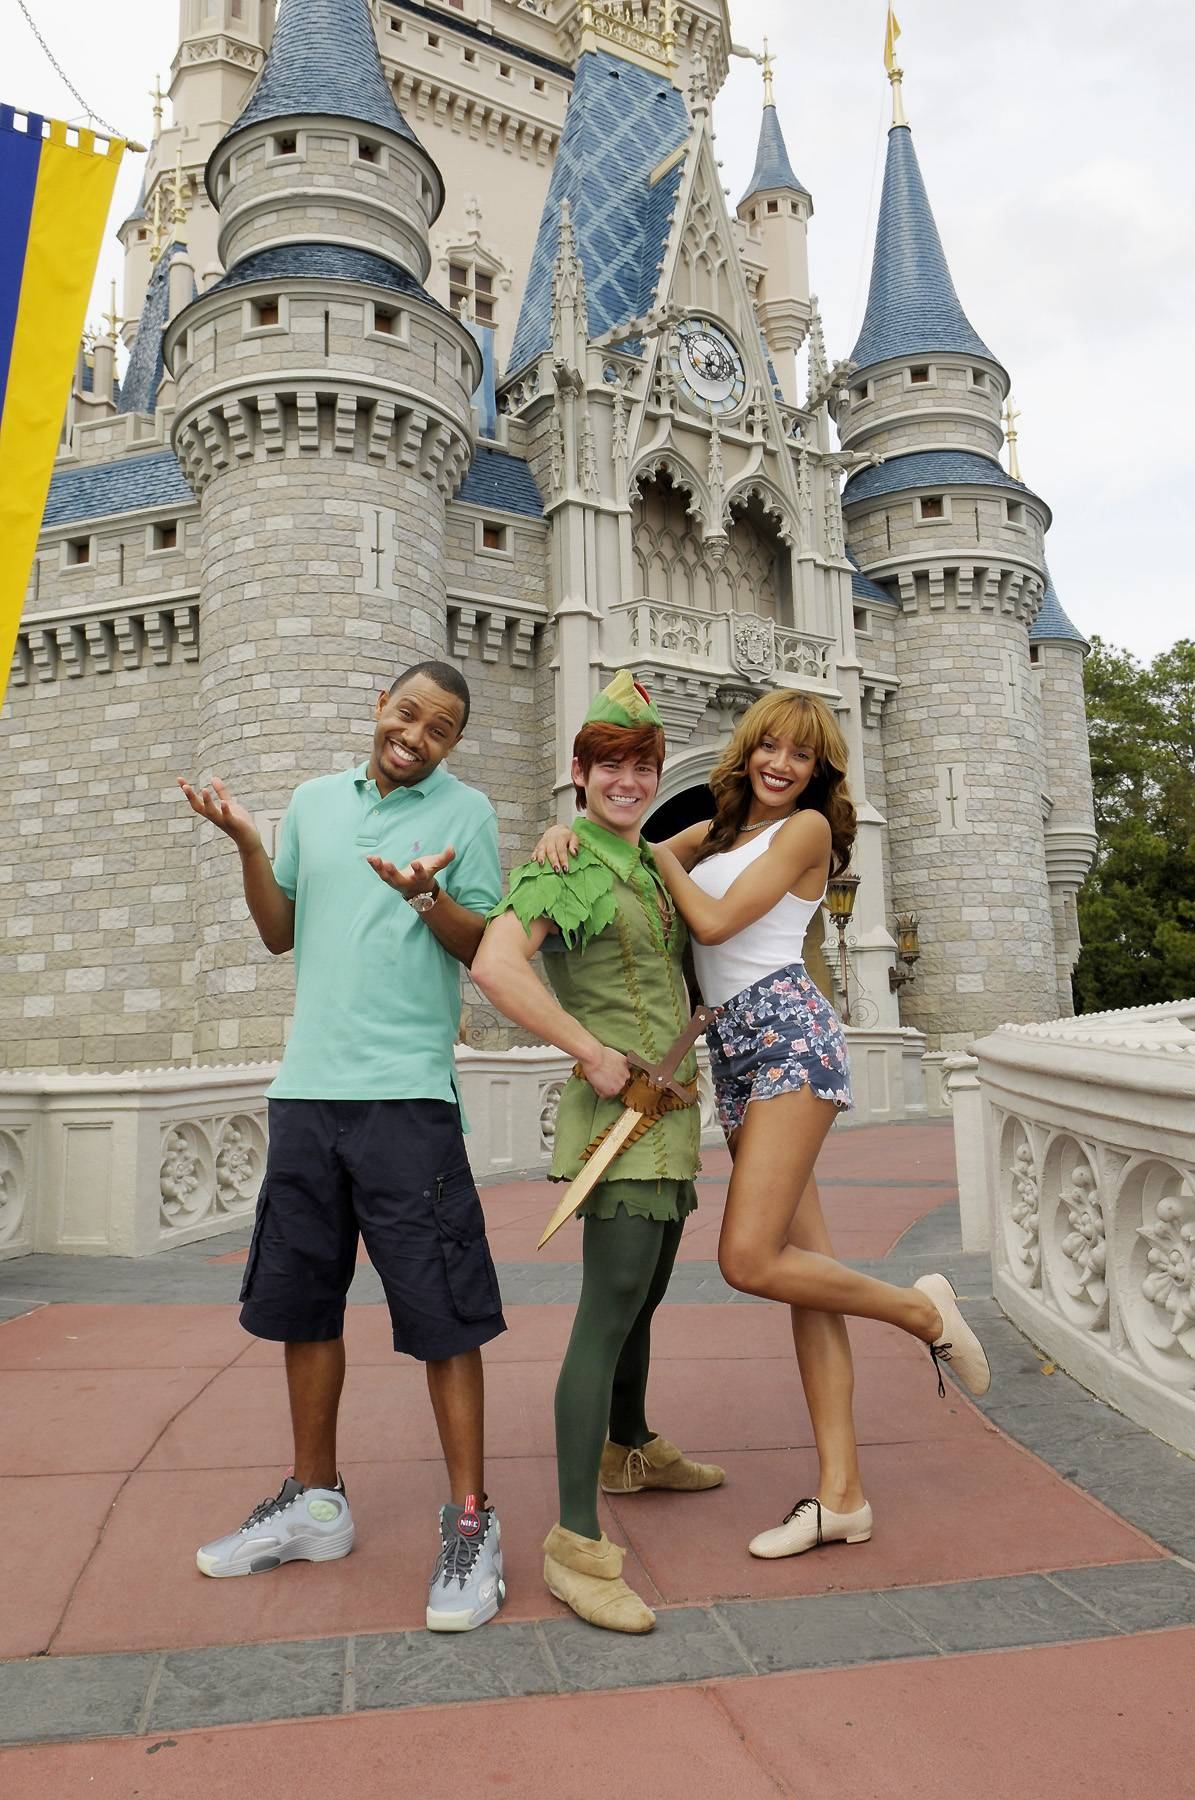 Magical Moment - Terrence J and supermodel Selita Ebanks were enchanted by Peter Pan while visiting the Magic Kingdom during the Dreamers Academy on March 9.  (Photo: Phelan Ebenhack)